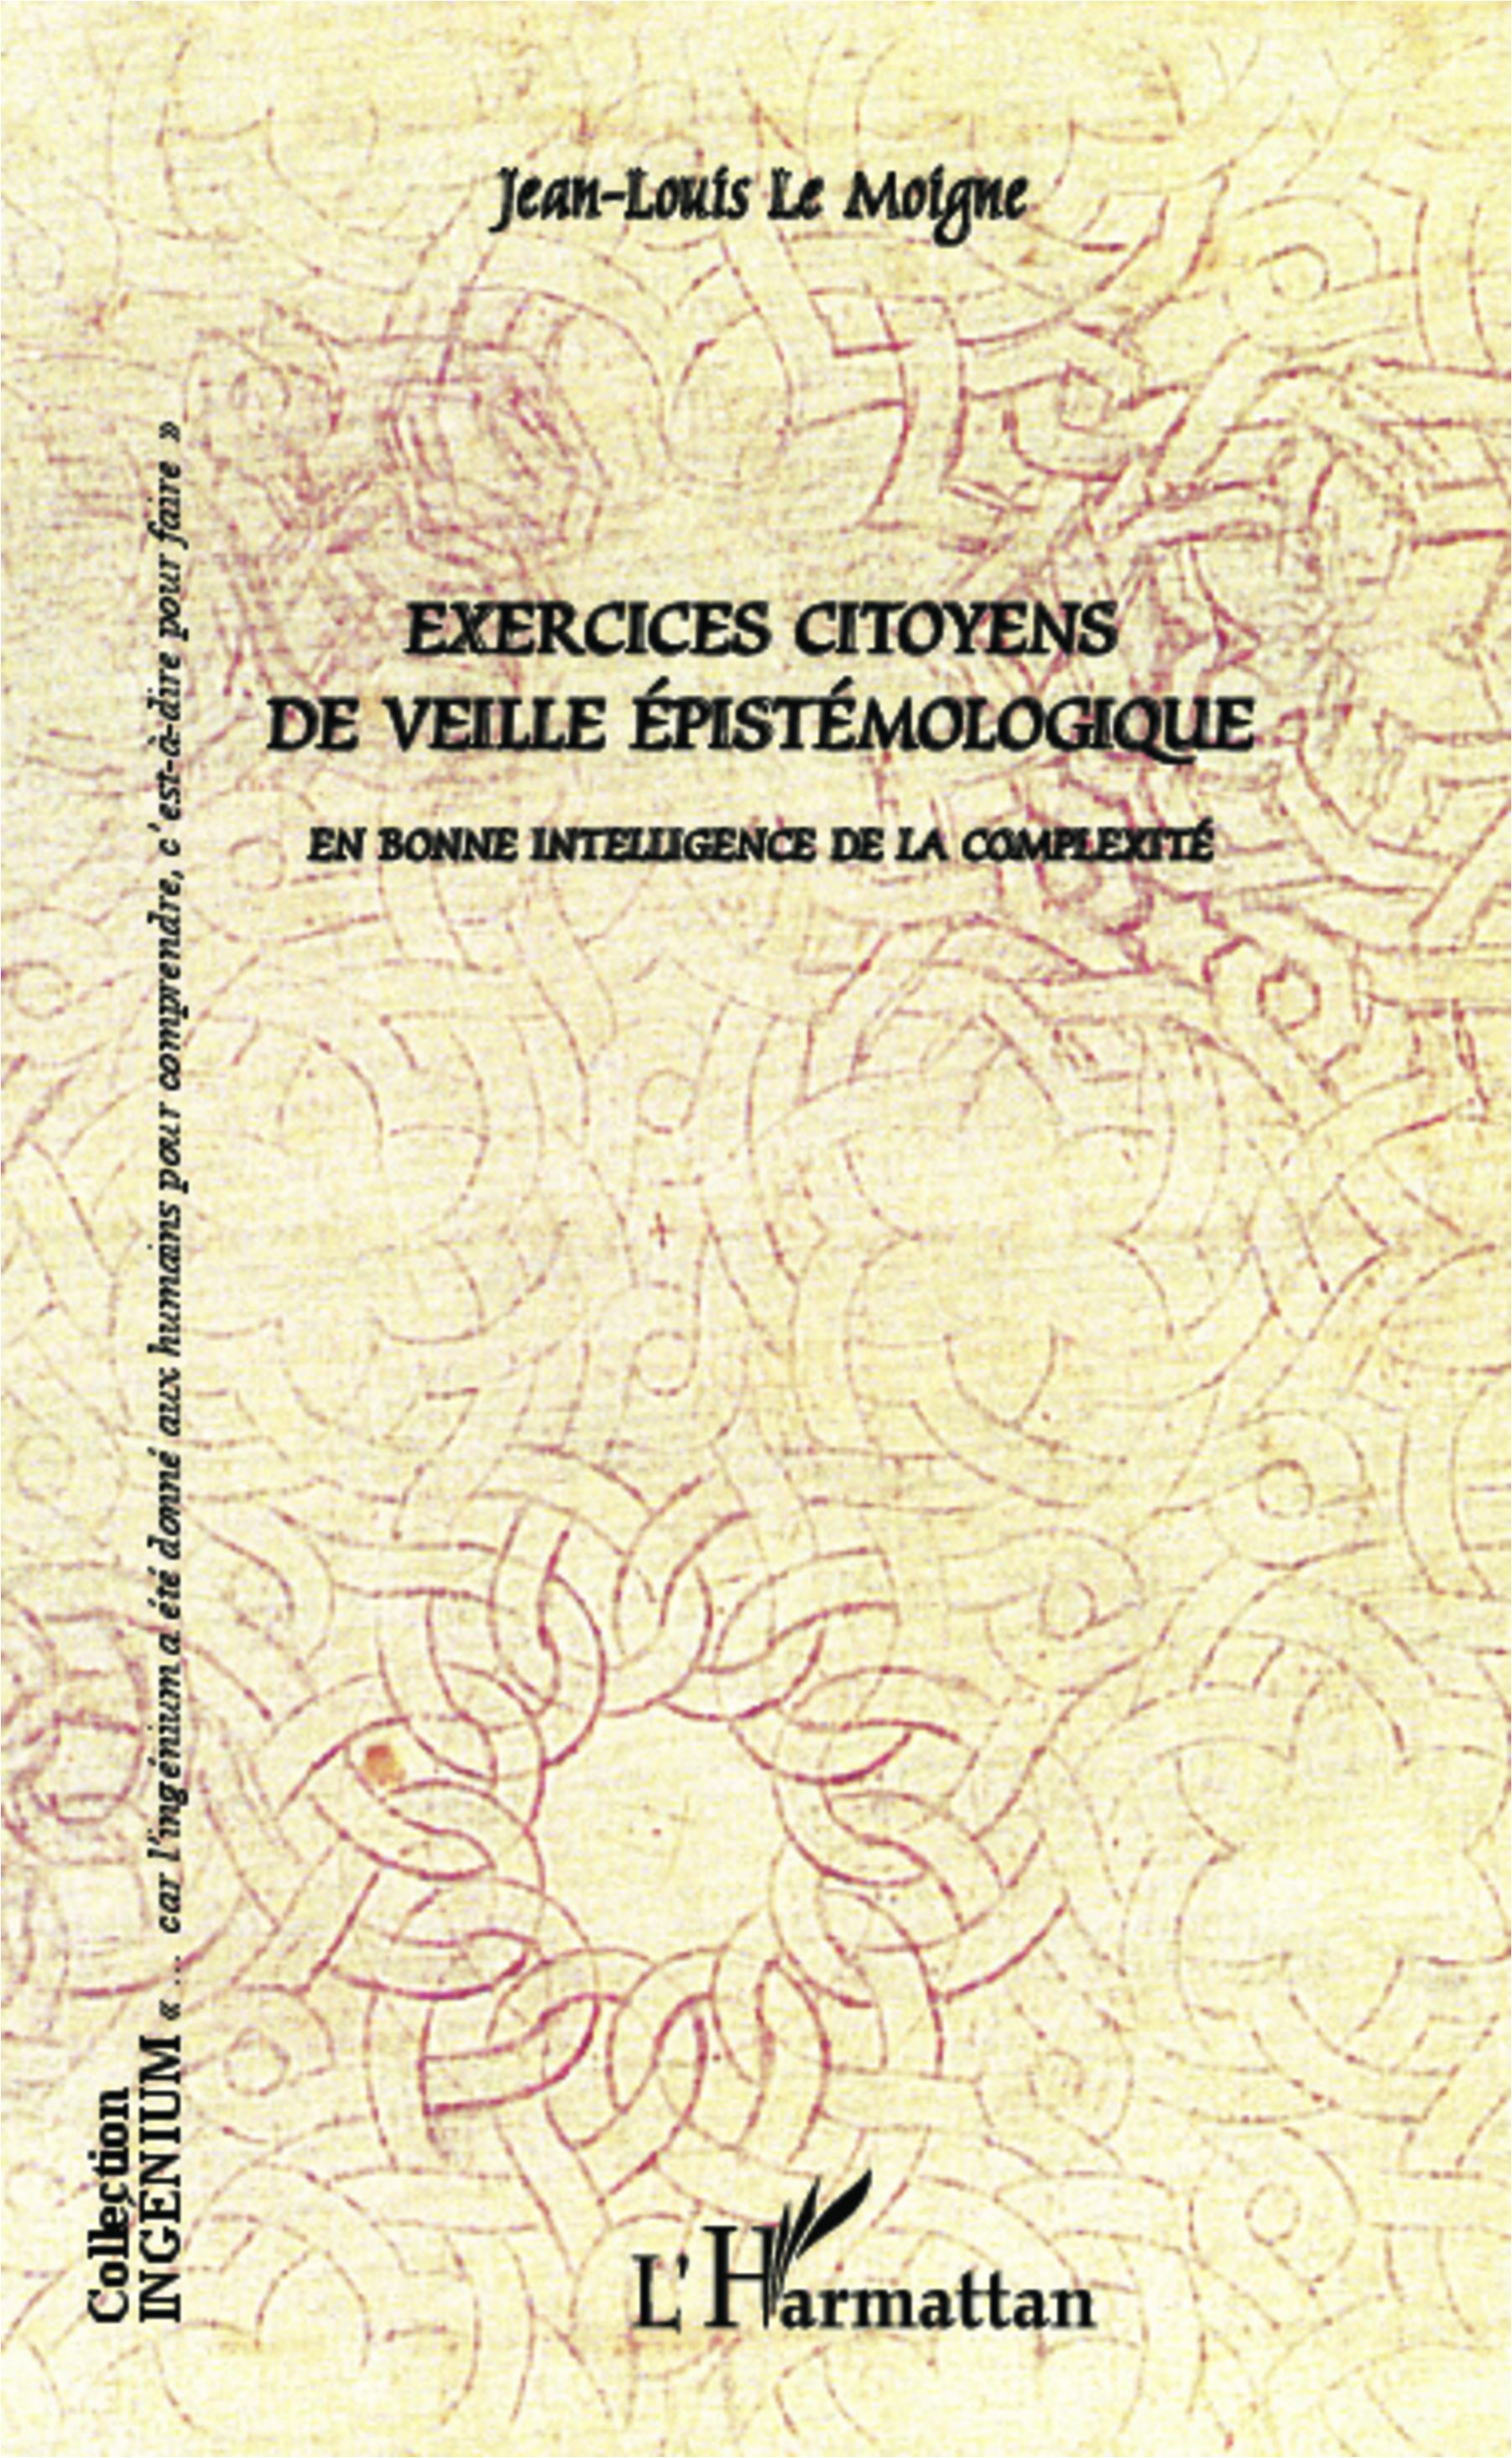 Exercices citoyens